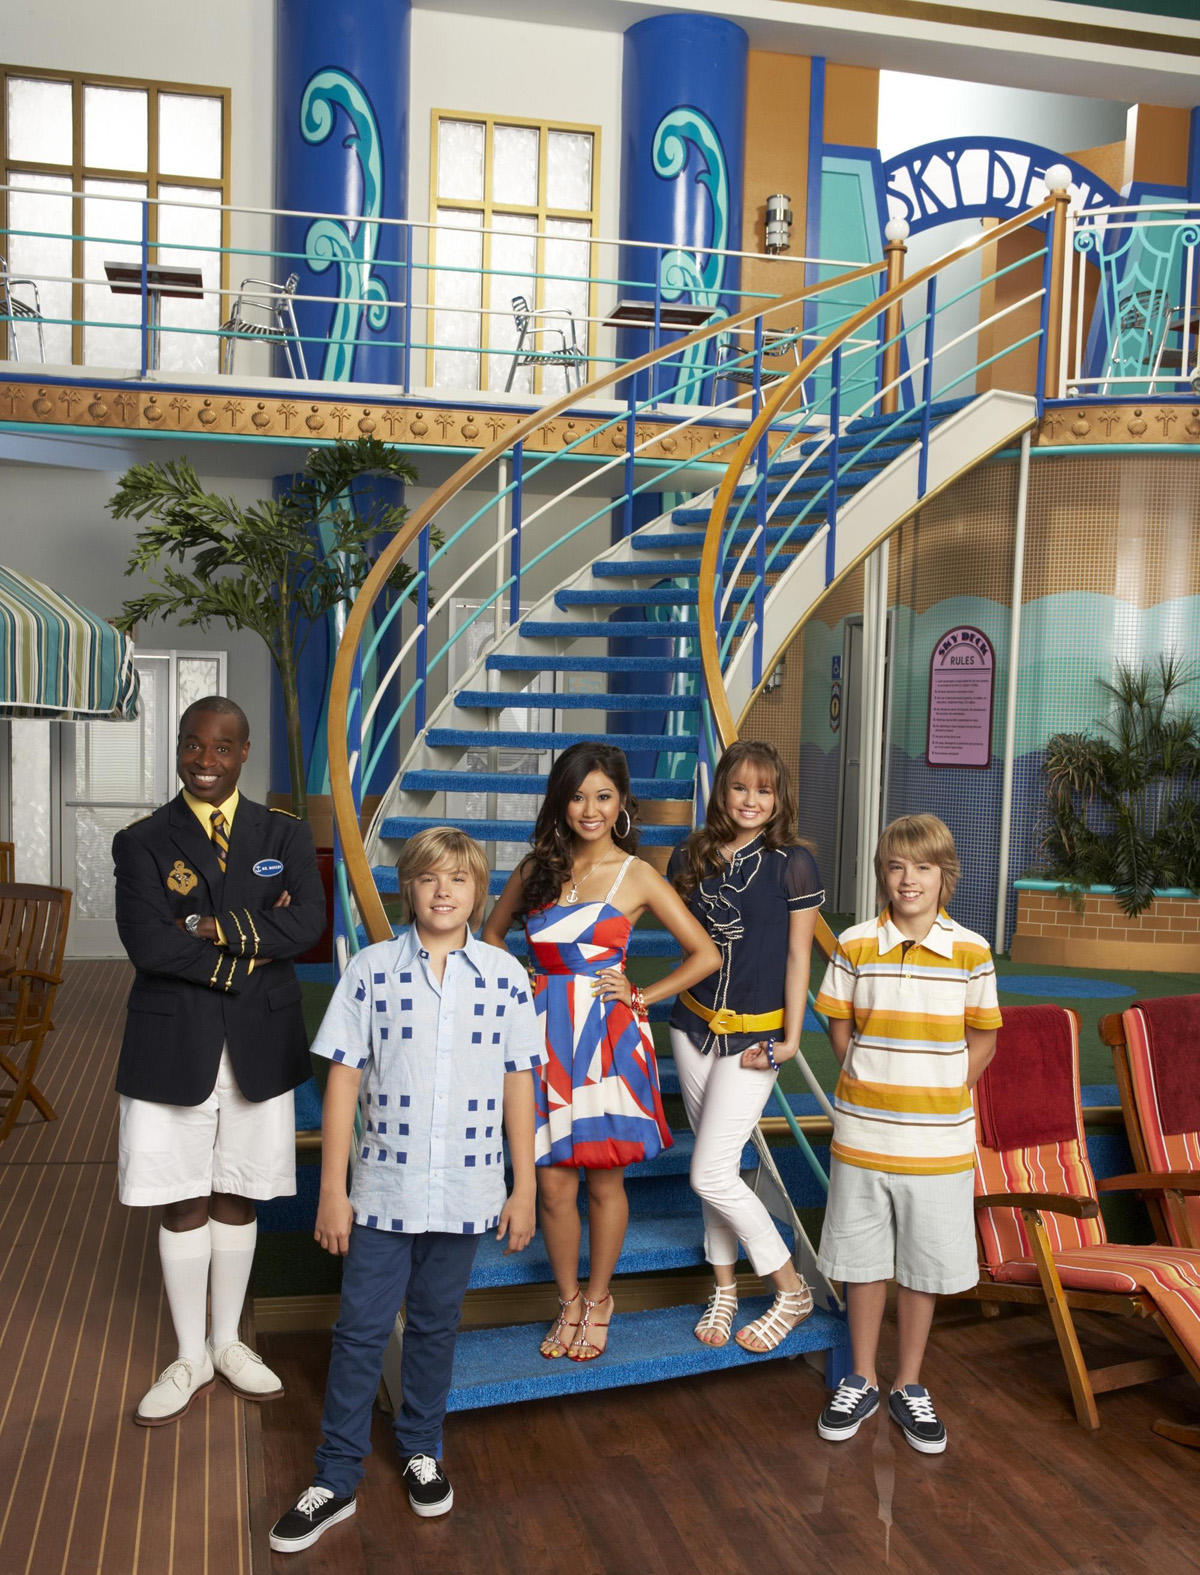 Disney - La Vie de Palace de Zack et Cody - Illustration